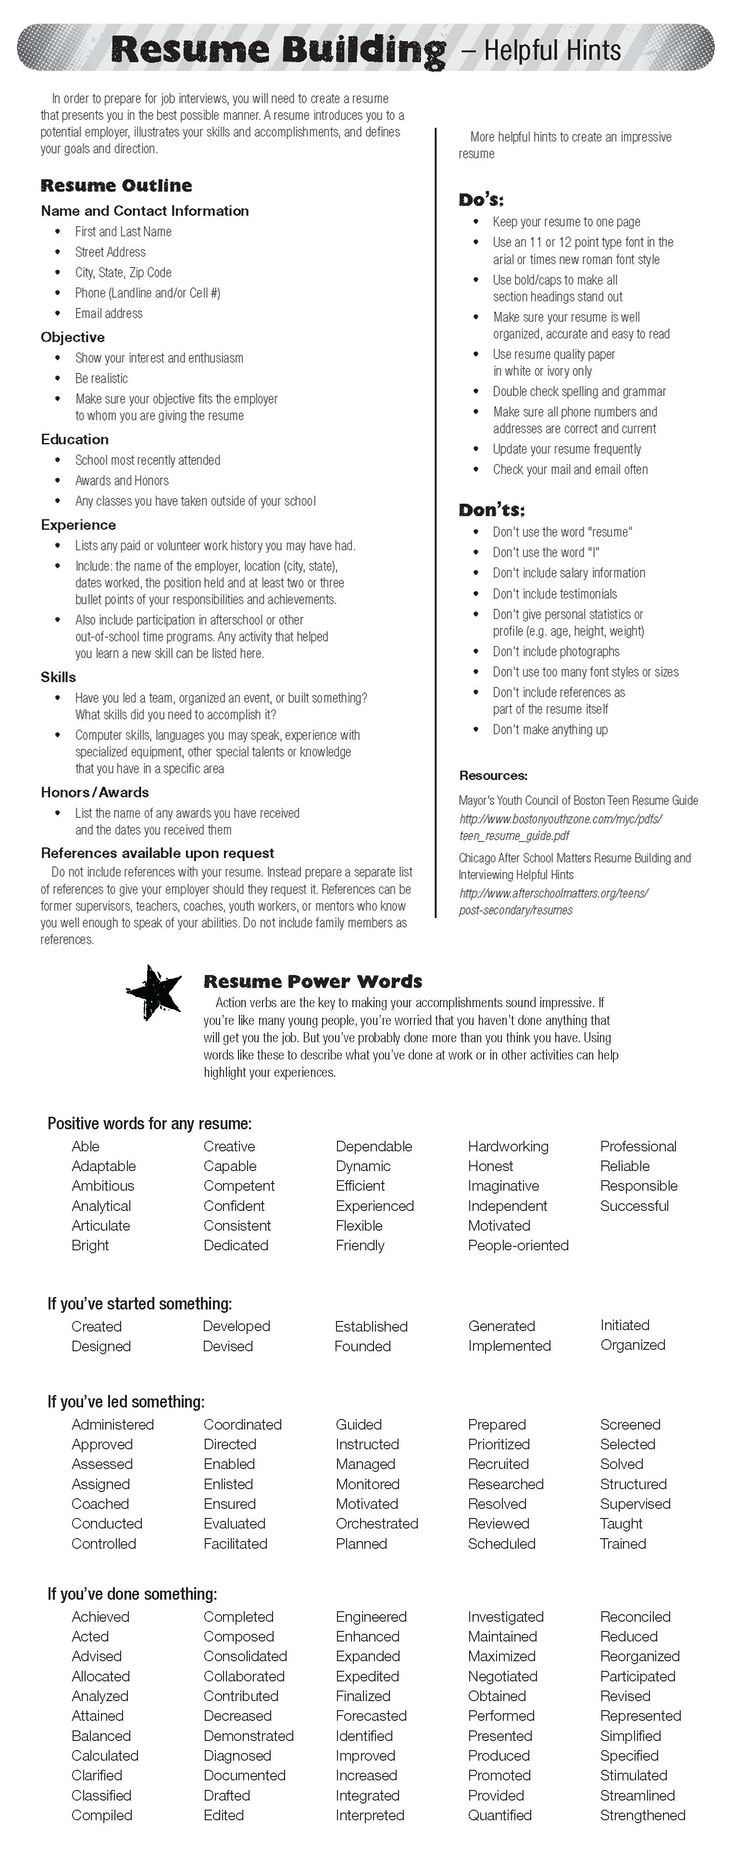 Opposenewapstandardsus  Fascinating  Ideas About Resume On Pinterest  Cv Format Resume Cv And  With Likable  Ideas About Resume On Pinterest  Cv Format Resume Cv And Resume Templates With Breathtaking Writing Resume Also Action Verbs For Resumes In Addition Resume Format Word And Emt Resume As Well As Cool Resume Templates Additionally Professional Resume Writer From Pinterestcom With Opposenewapstandardsus  Likable  Ideas About Resume On Pinterest  Cv Format Resume Cv And  With Breathtaking  Ideas About Resume On Pinterest  Cv Format Resume Cv And Resume Templates And Fascinating Writing Resume Also Action Verbs For Resumes In Addition Resume Format Word From Pinterestcom